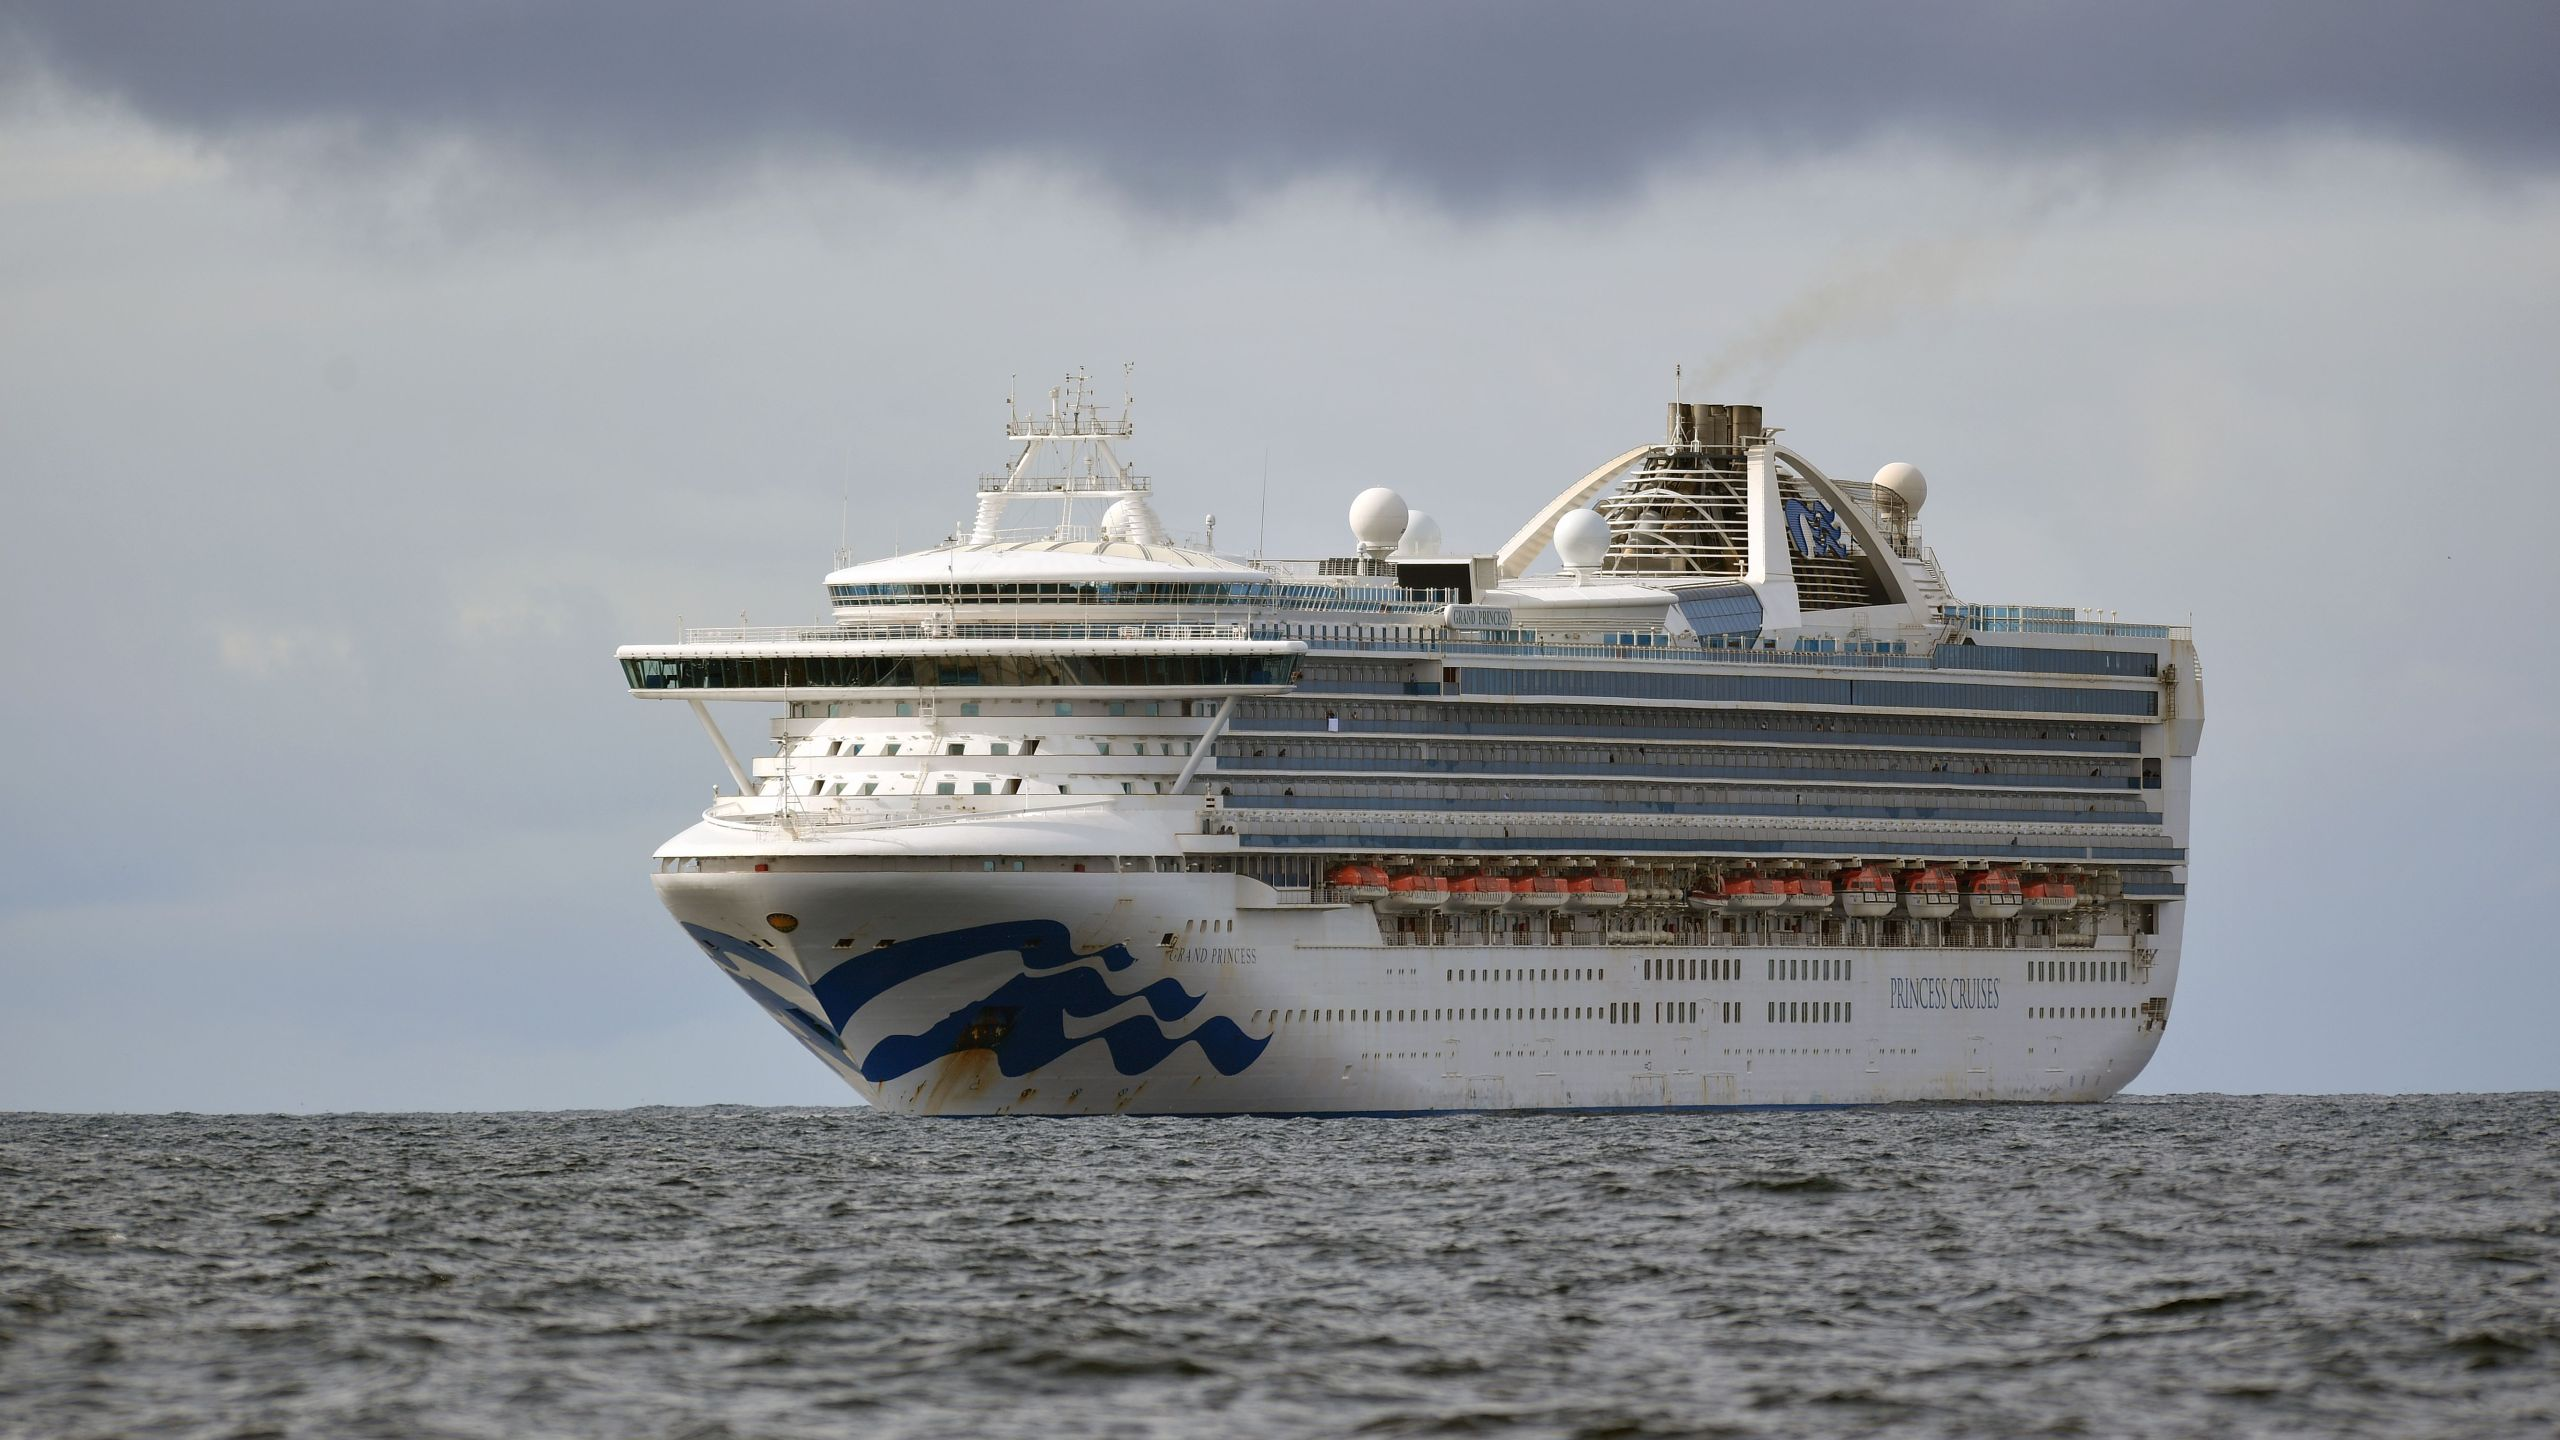 People look out from aboard the Grand Princess cruise ship, operated by Princess Cruises, as it maintains a holding pattern about 25 miles off the coast of San Francisco, California on March 8, 2020. (JOSH EDELSON/AFP via Getty Images)